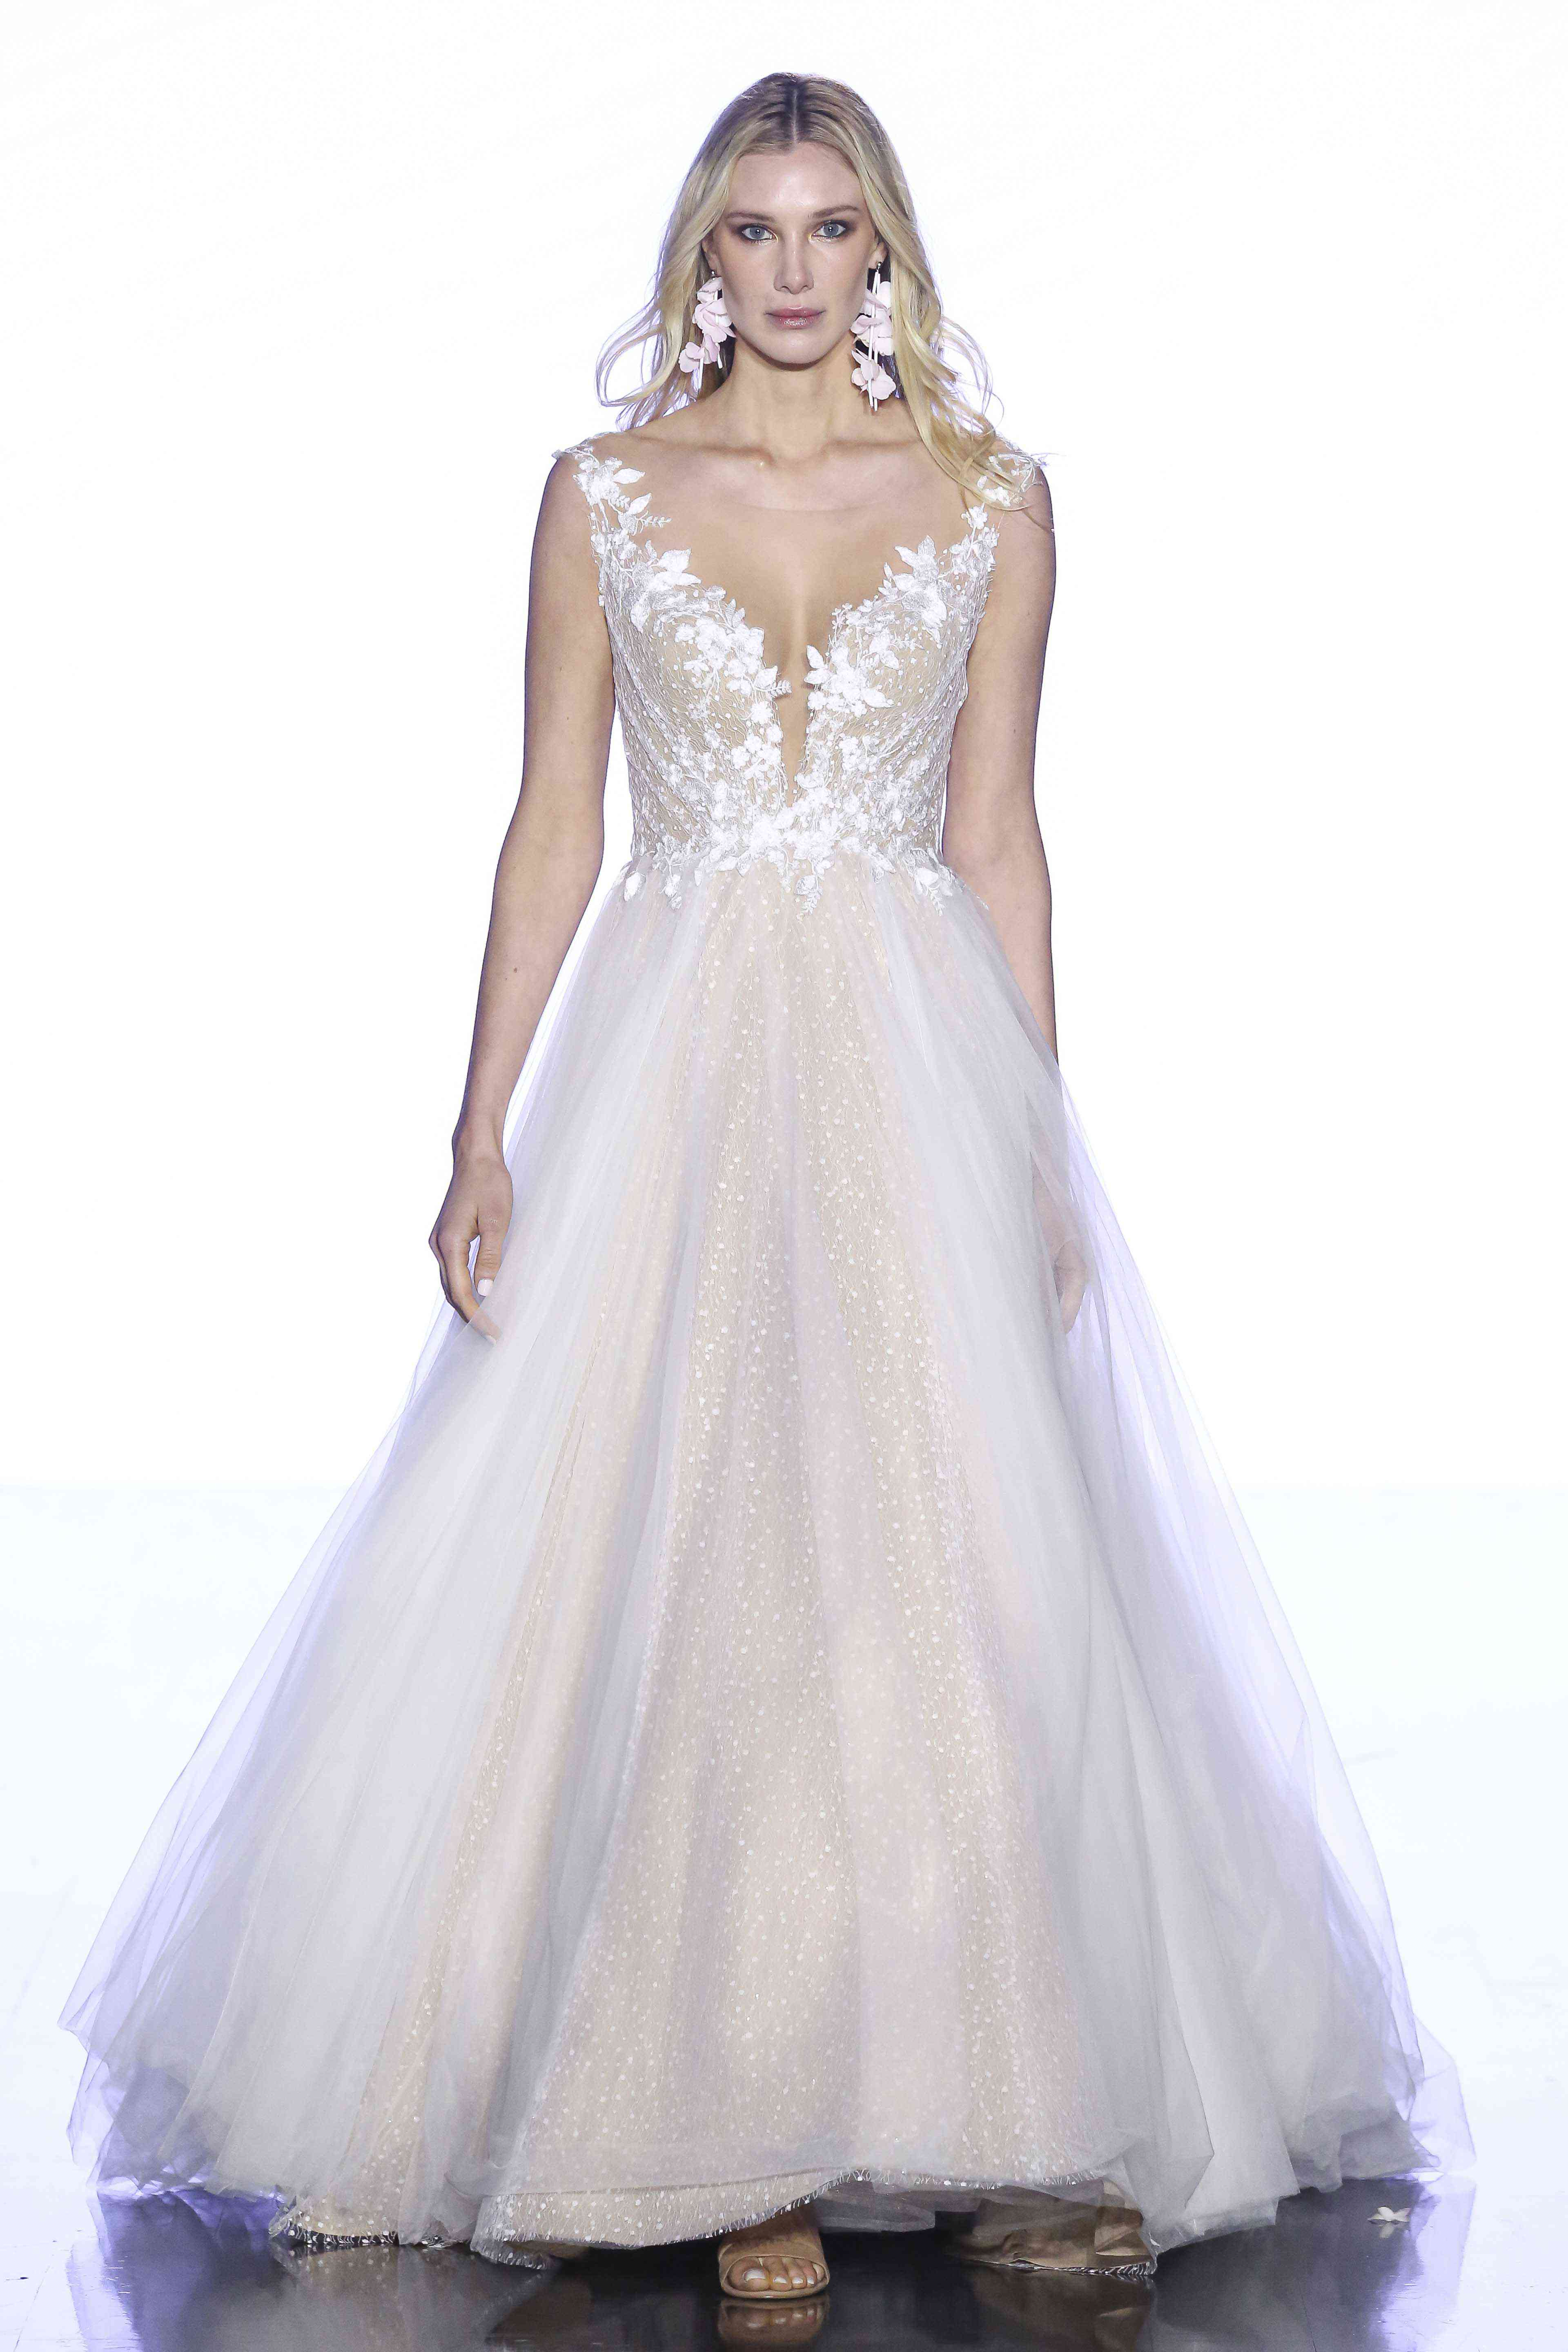 Model in A-line wedding gown with a floral lace bodice and a dotted mesh and tulle skirt